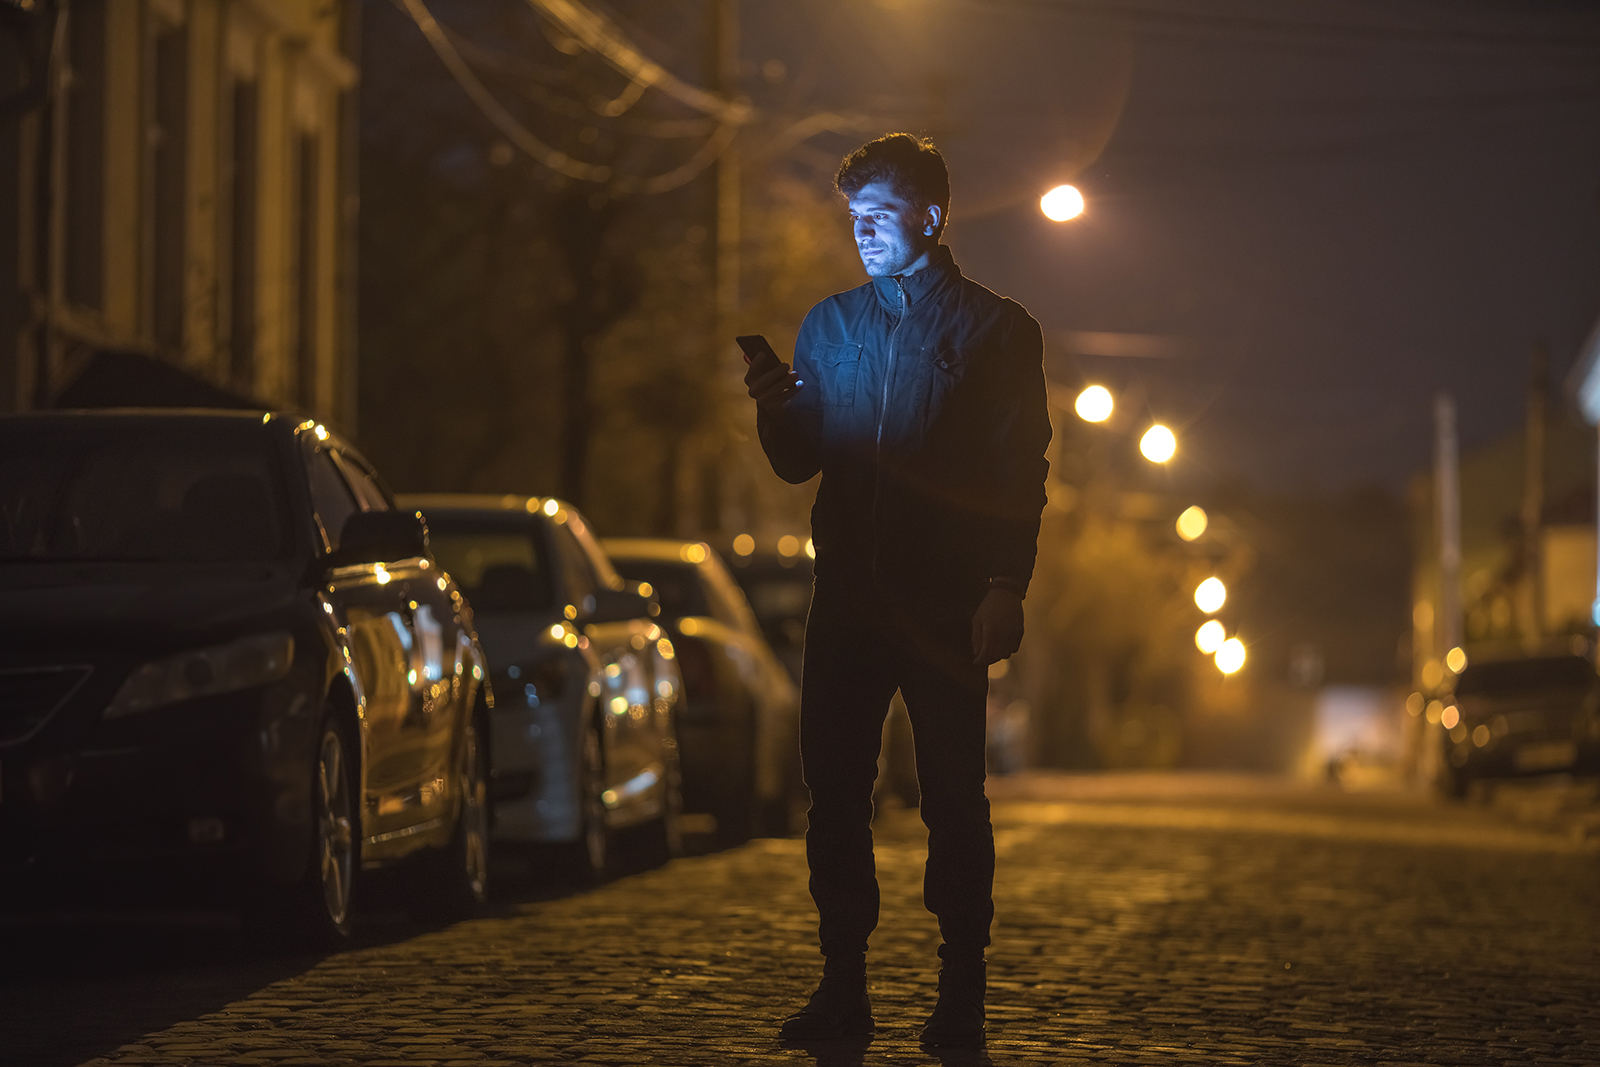 Male alone on a dark street looking at his phone